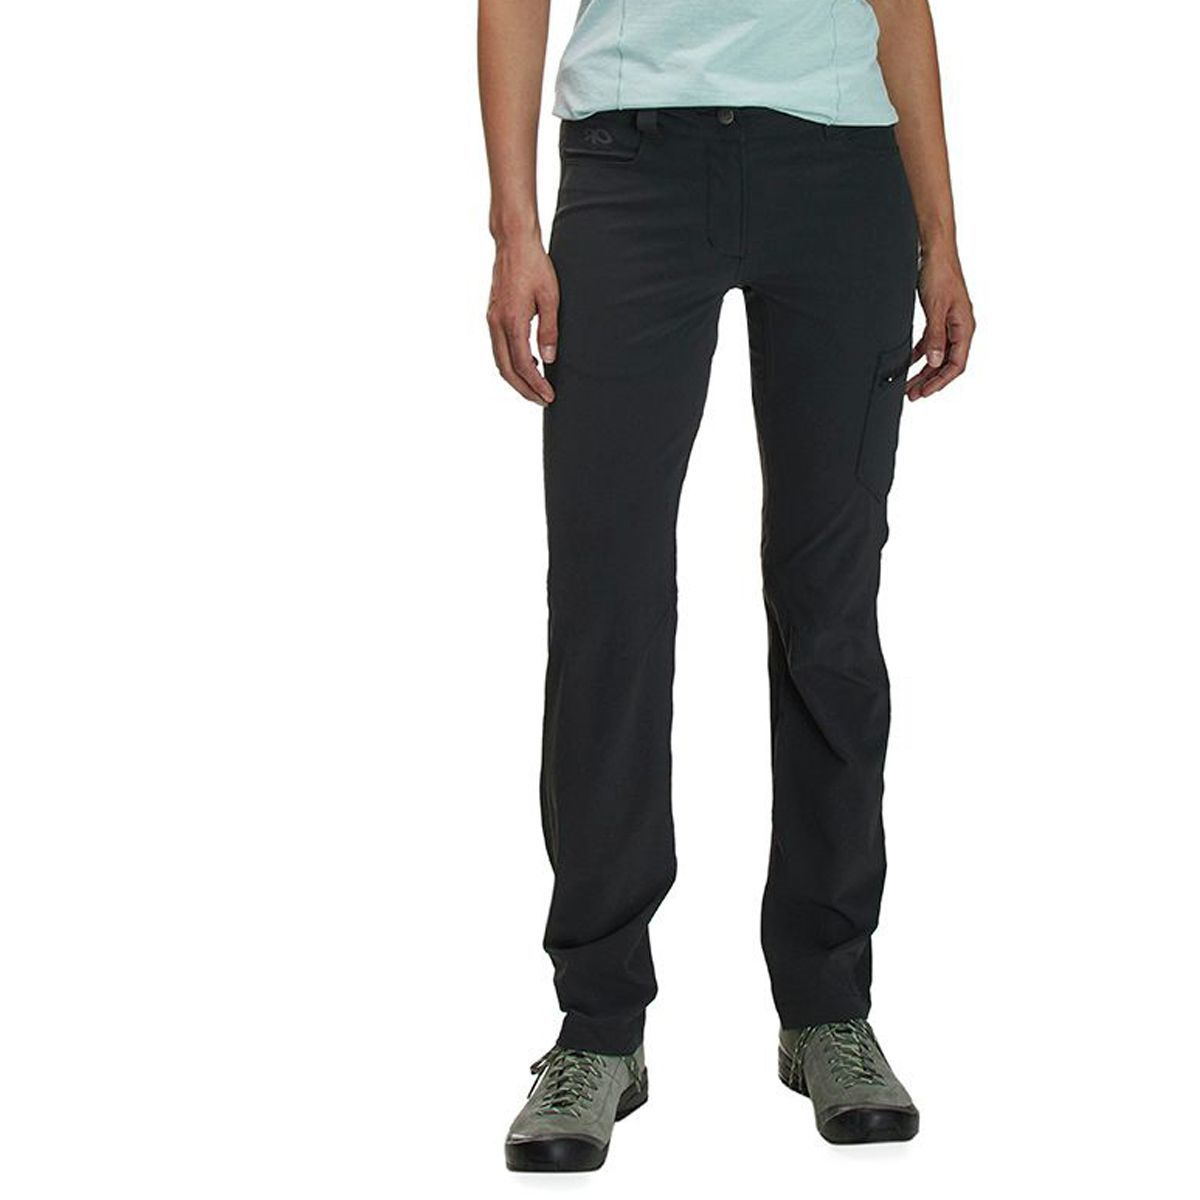 Outdoor Research Ferrosi Pant - Women's